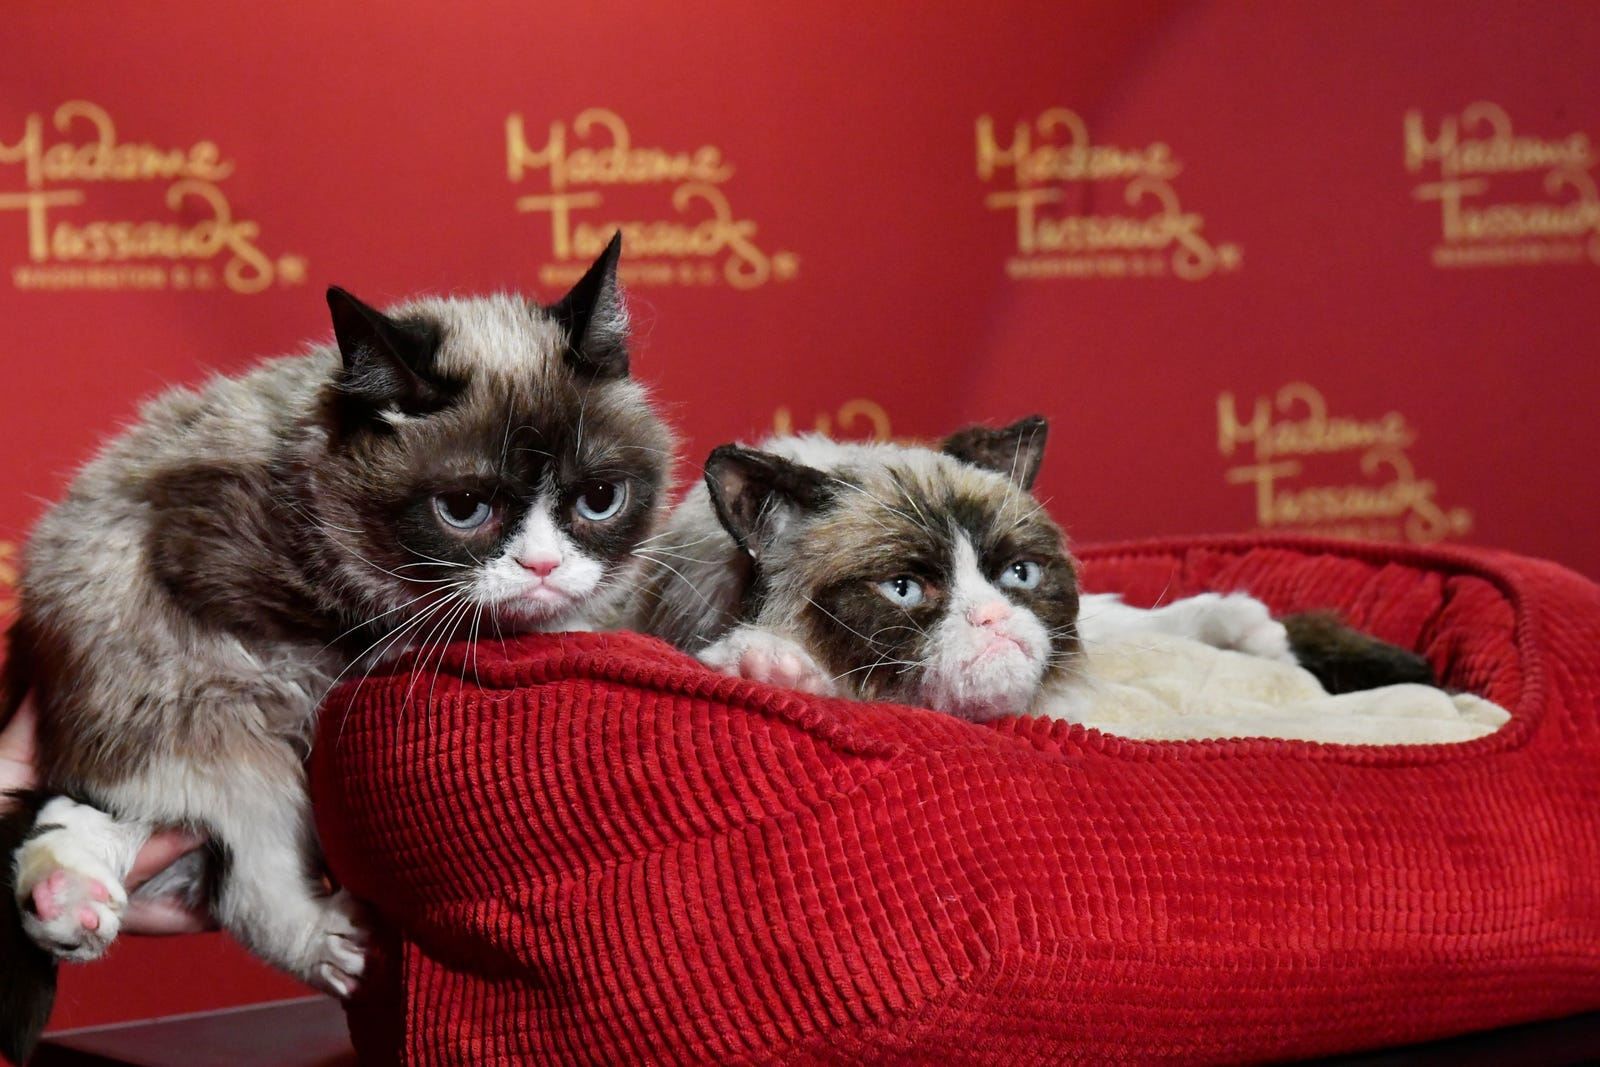 """Internet phenomenon Grumpy Cat brings her iconic """"No Face"""" to Madame Tussauds Washington, DC for a meet-and-greet with fans at Madame Tussauds on September 28, 2016 in Washington, DC."""